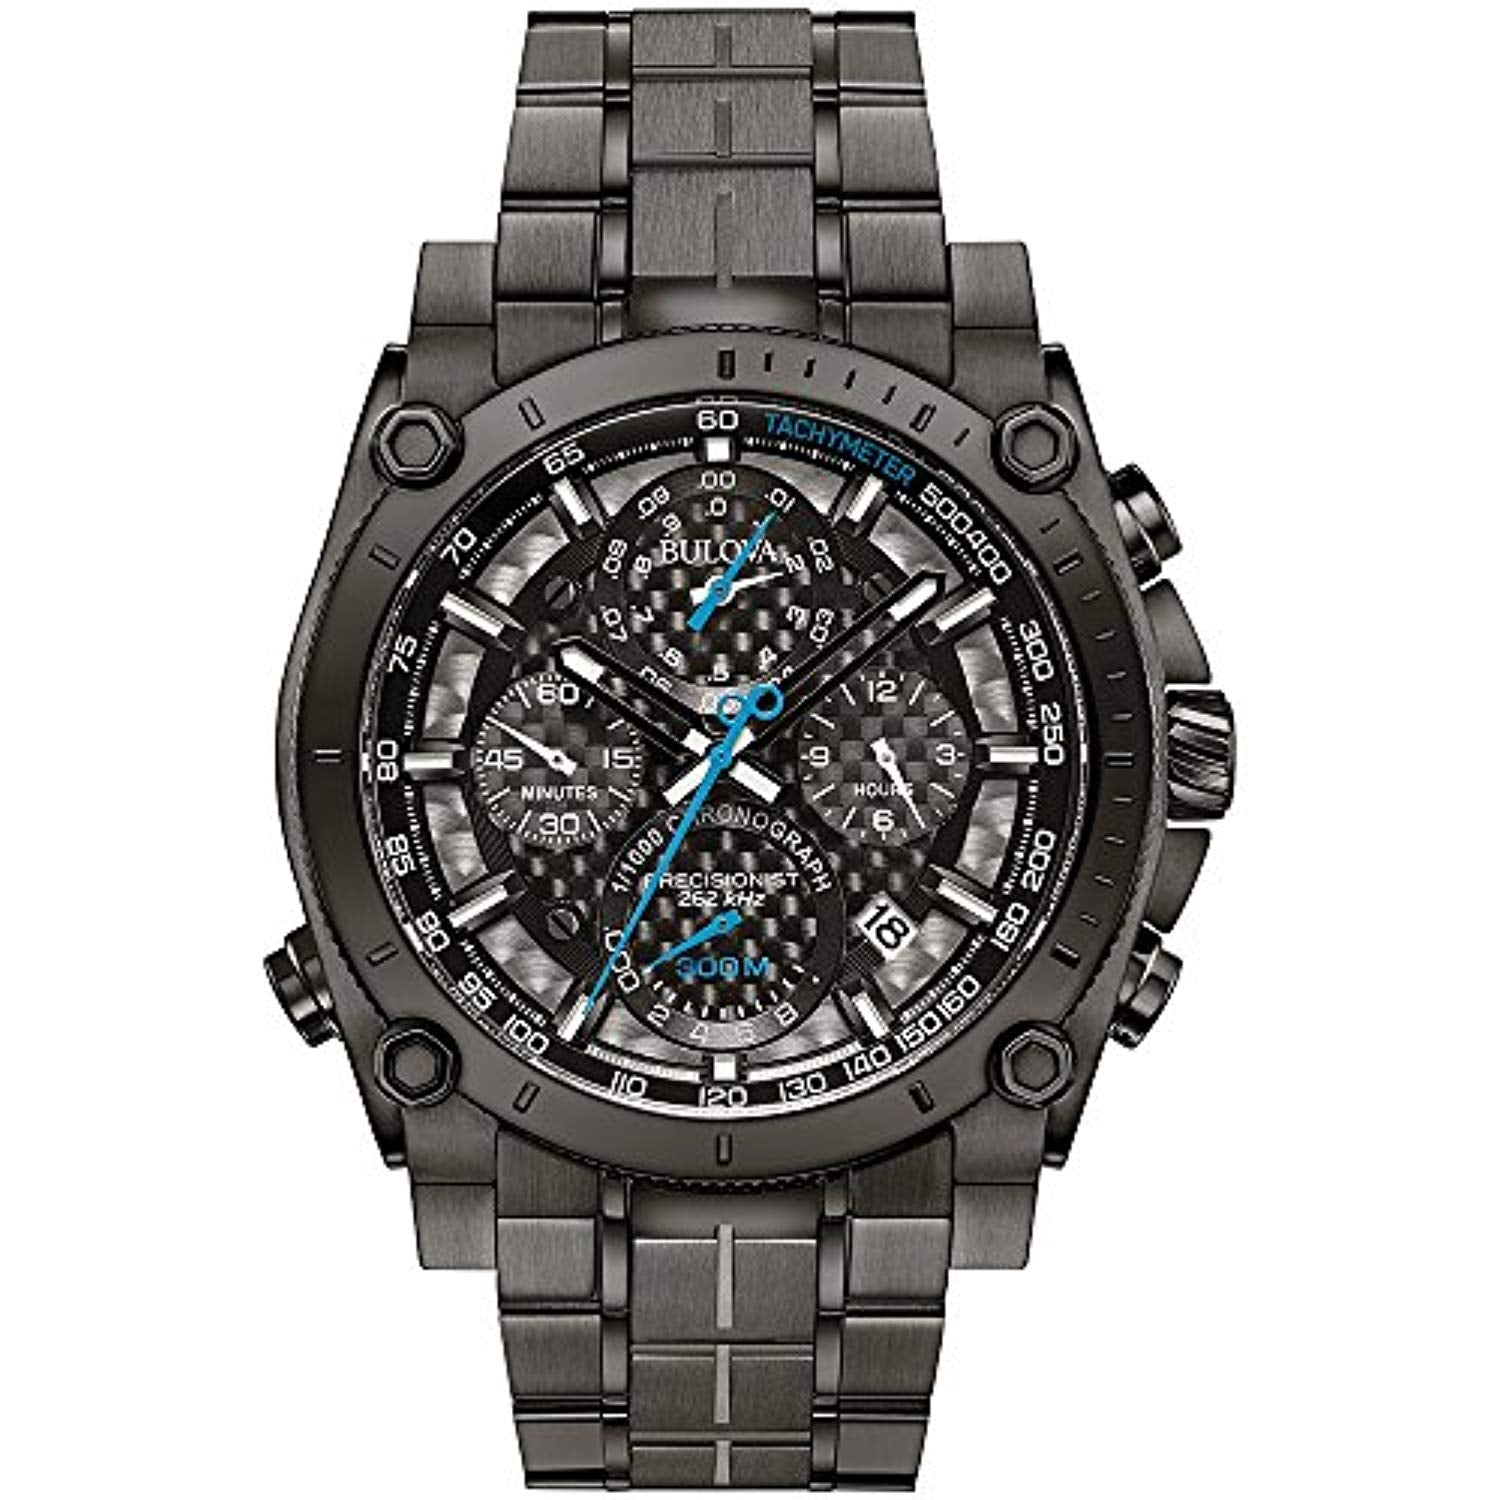 Bulova Men's Designer Chronograph Watch Stainless Steel Bracelet - Grey W/Blue Hands Precisionist Wrist Watch 98G229